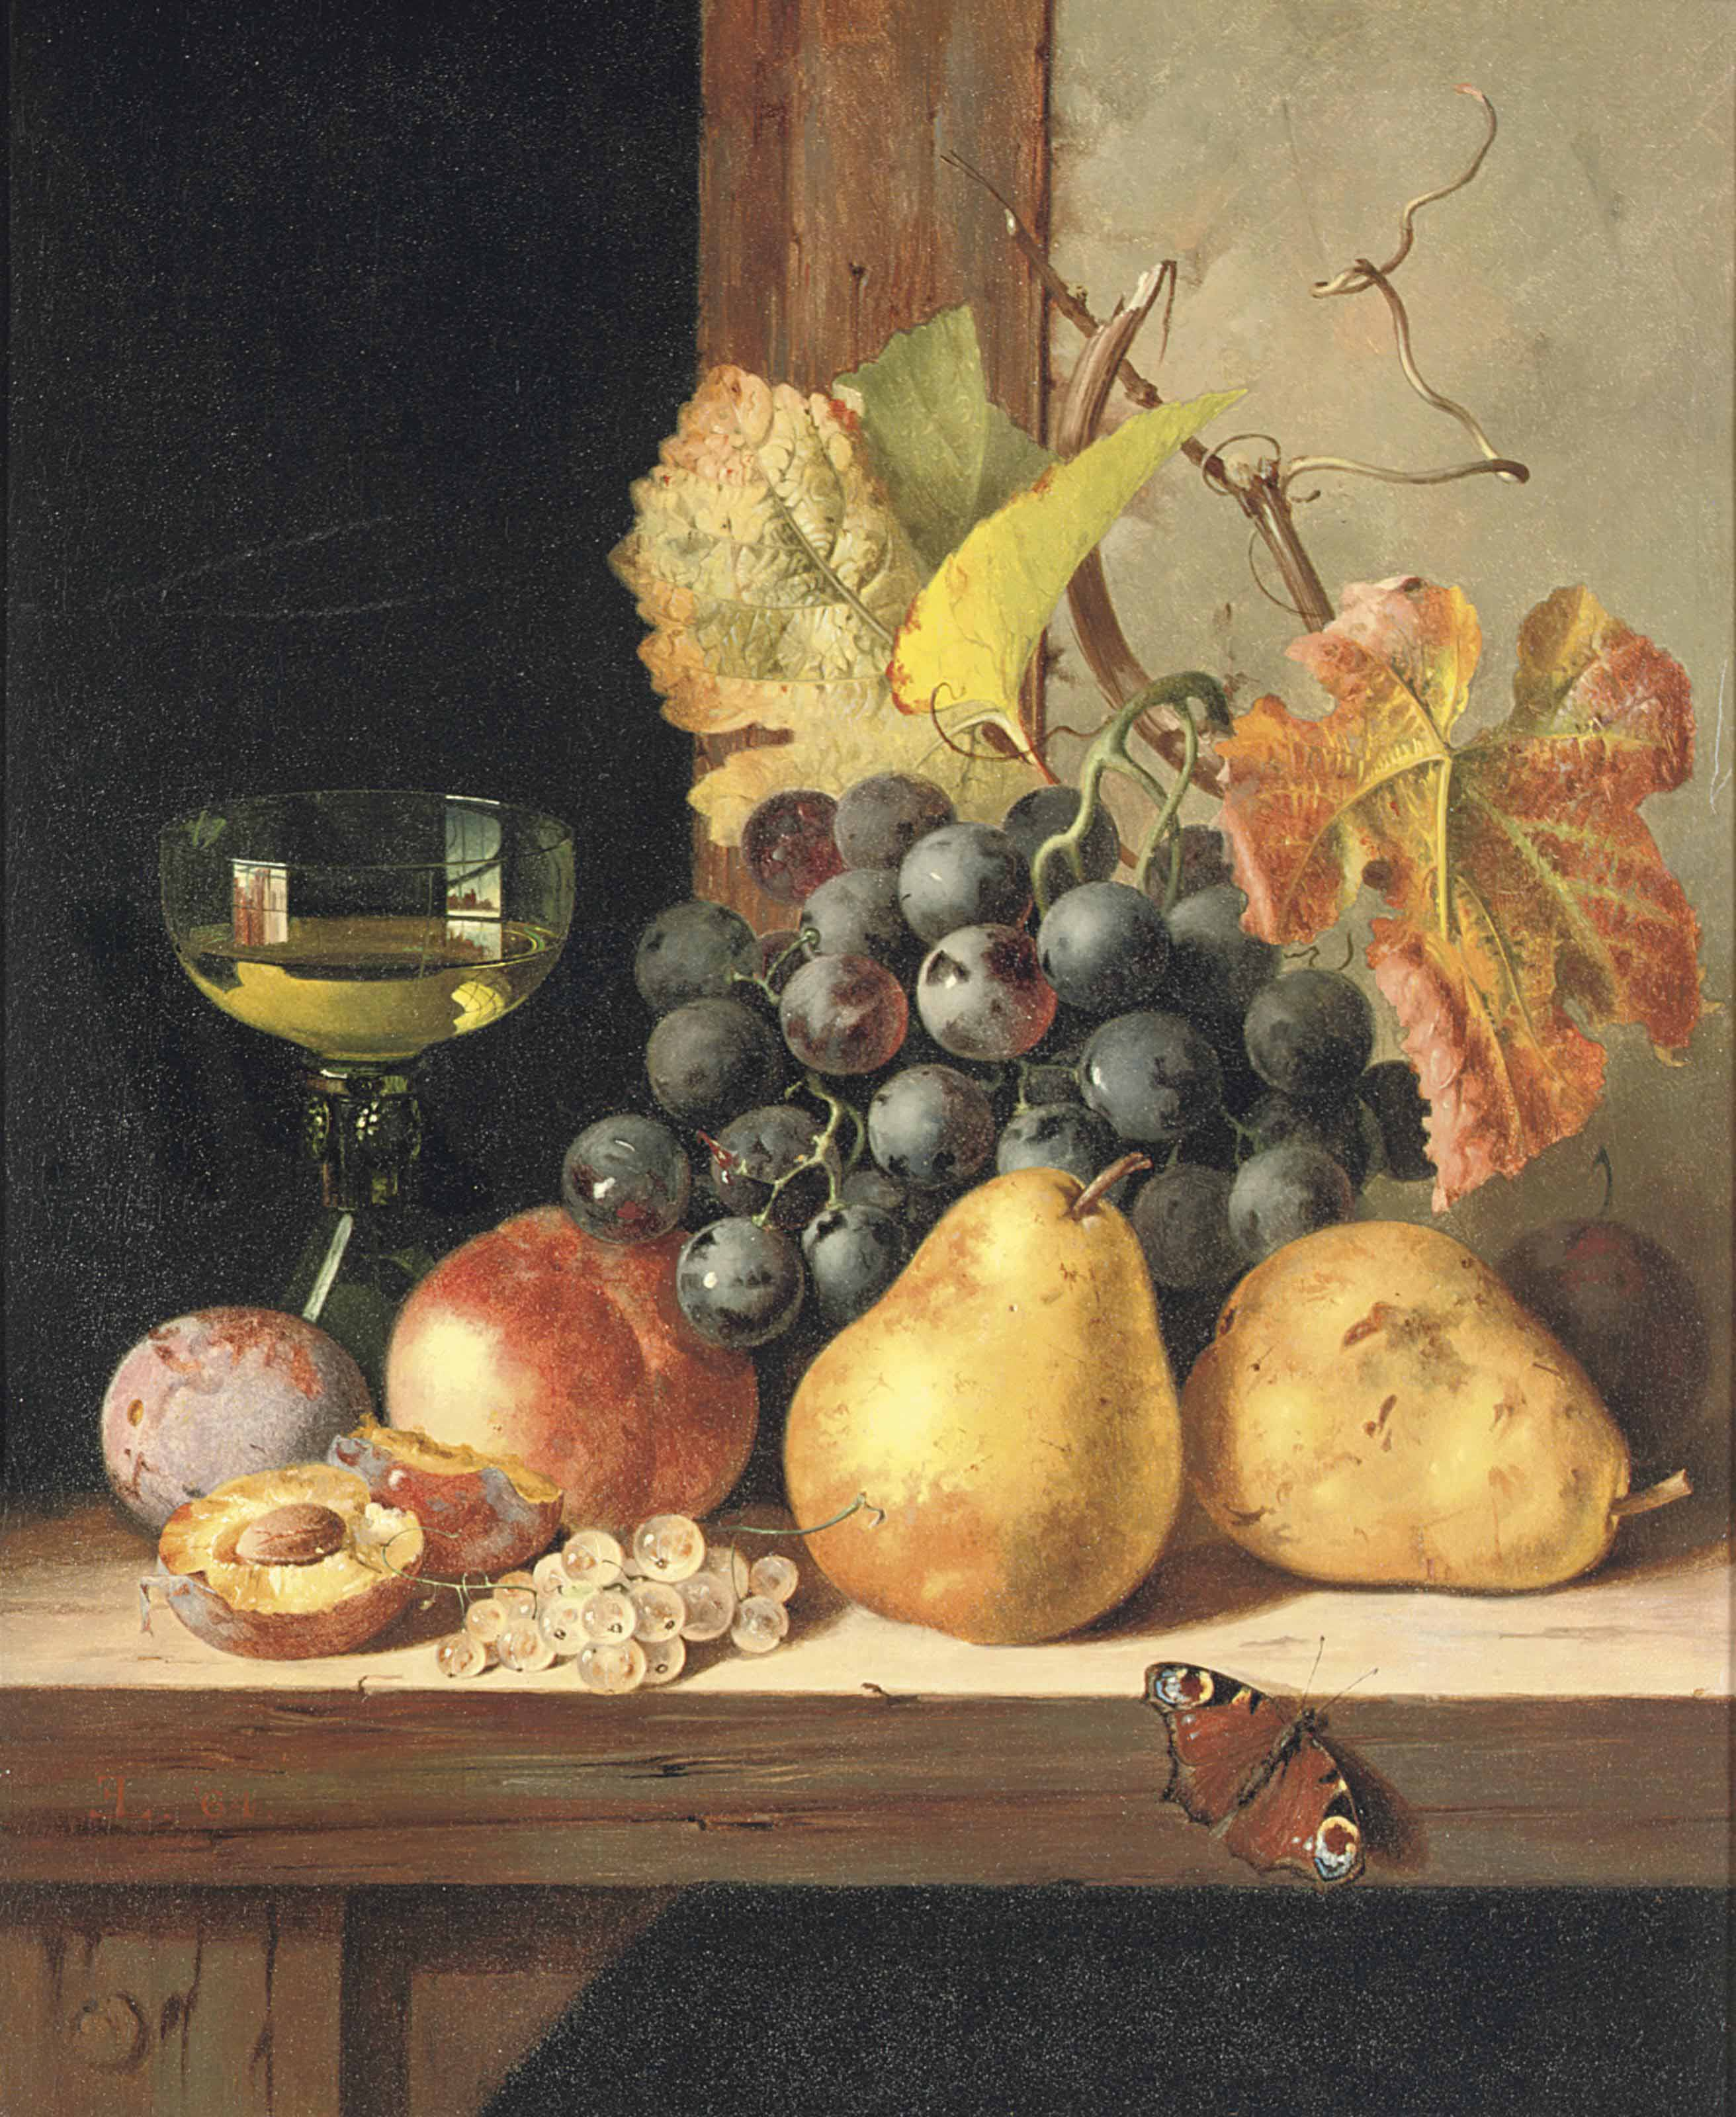 Black grapes, pears, a peach, plums, white currants, a peacock butterfly and a roemer on a wooden ledge